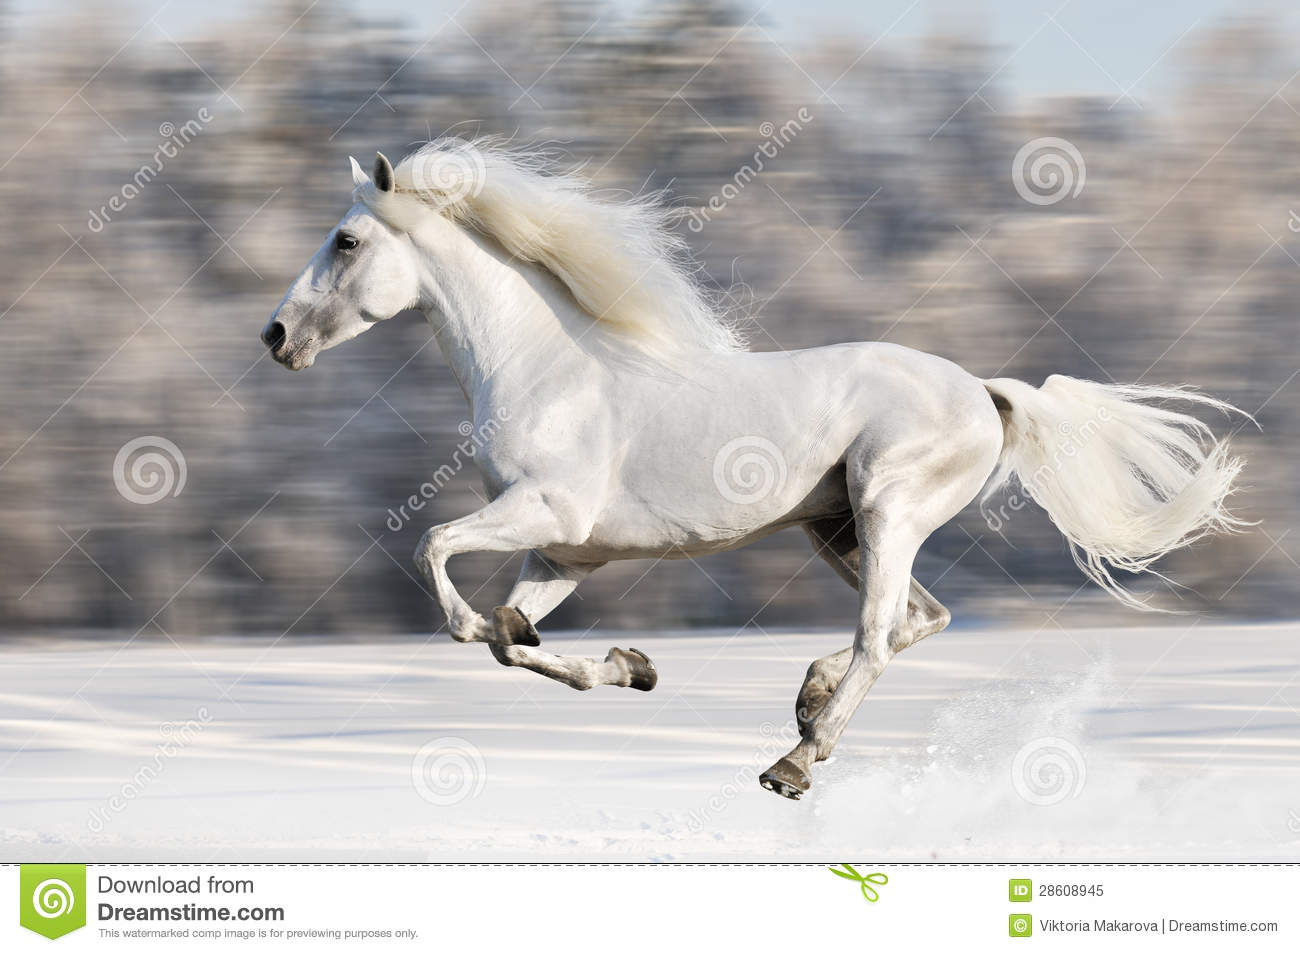 White Horse Runs Gallop In Winter Blur Motion Stock Image Image Of Horse Equine 28608945